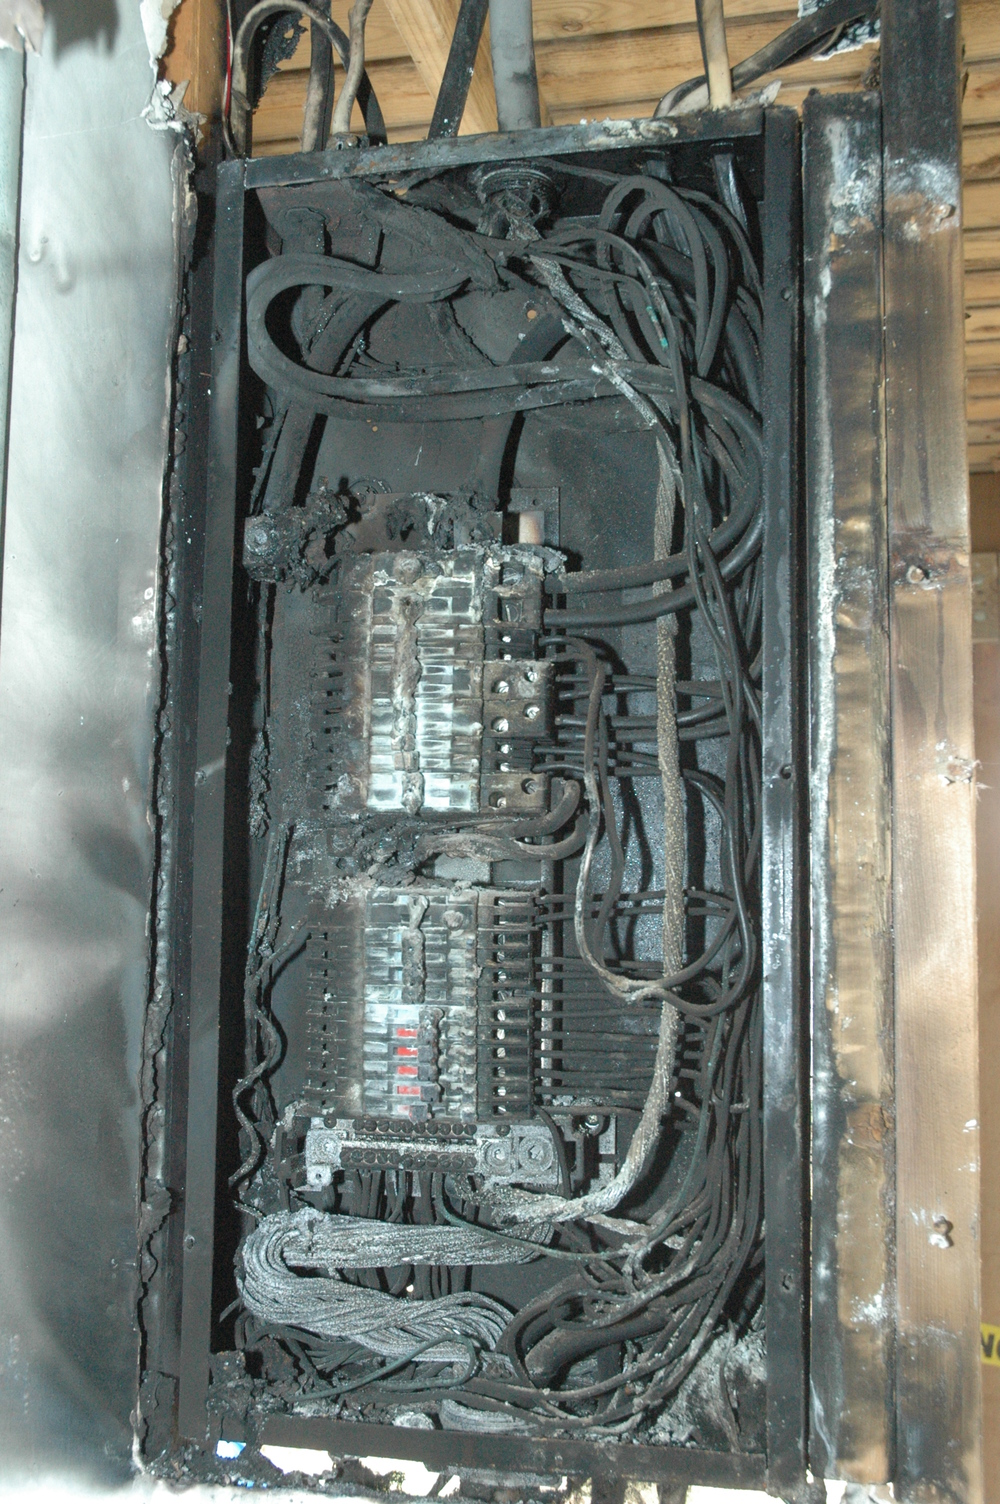 Electrical Panel Fire